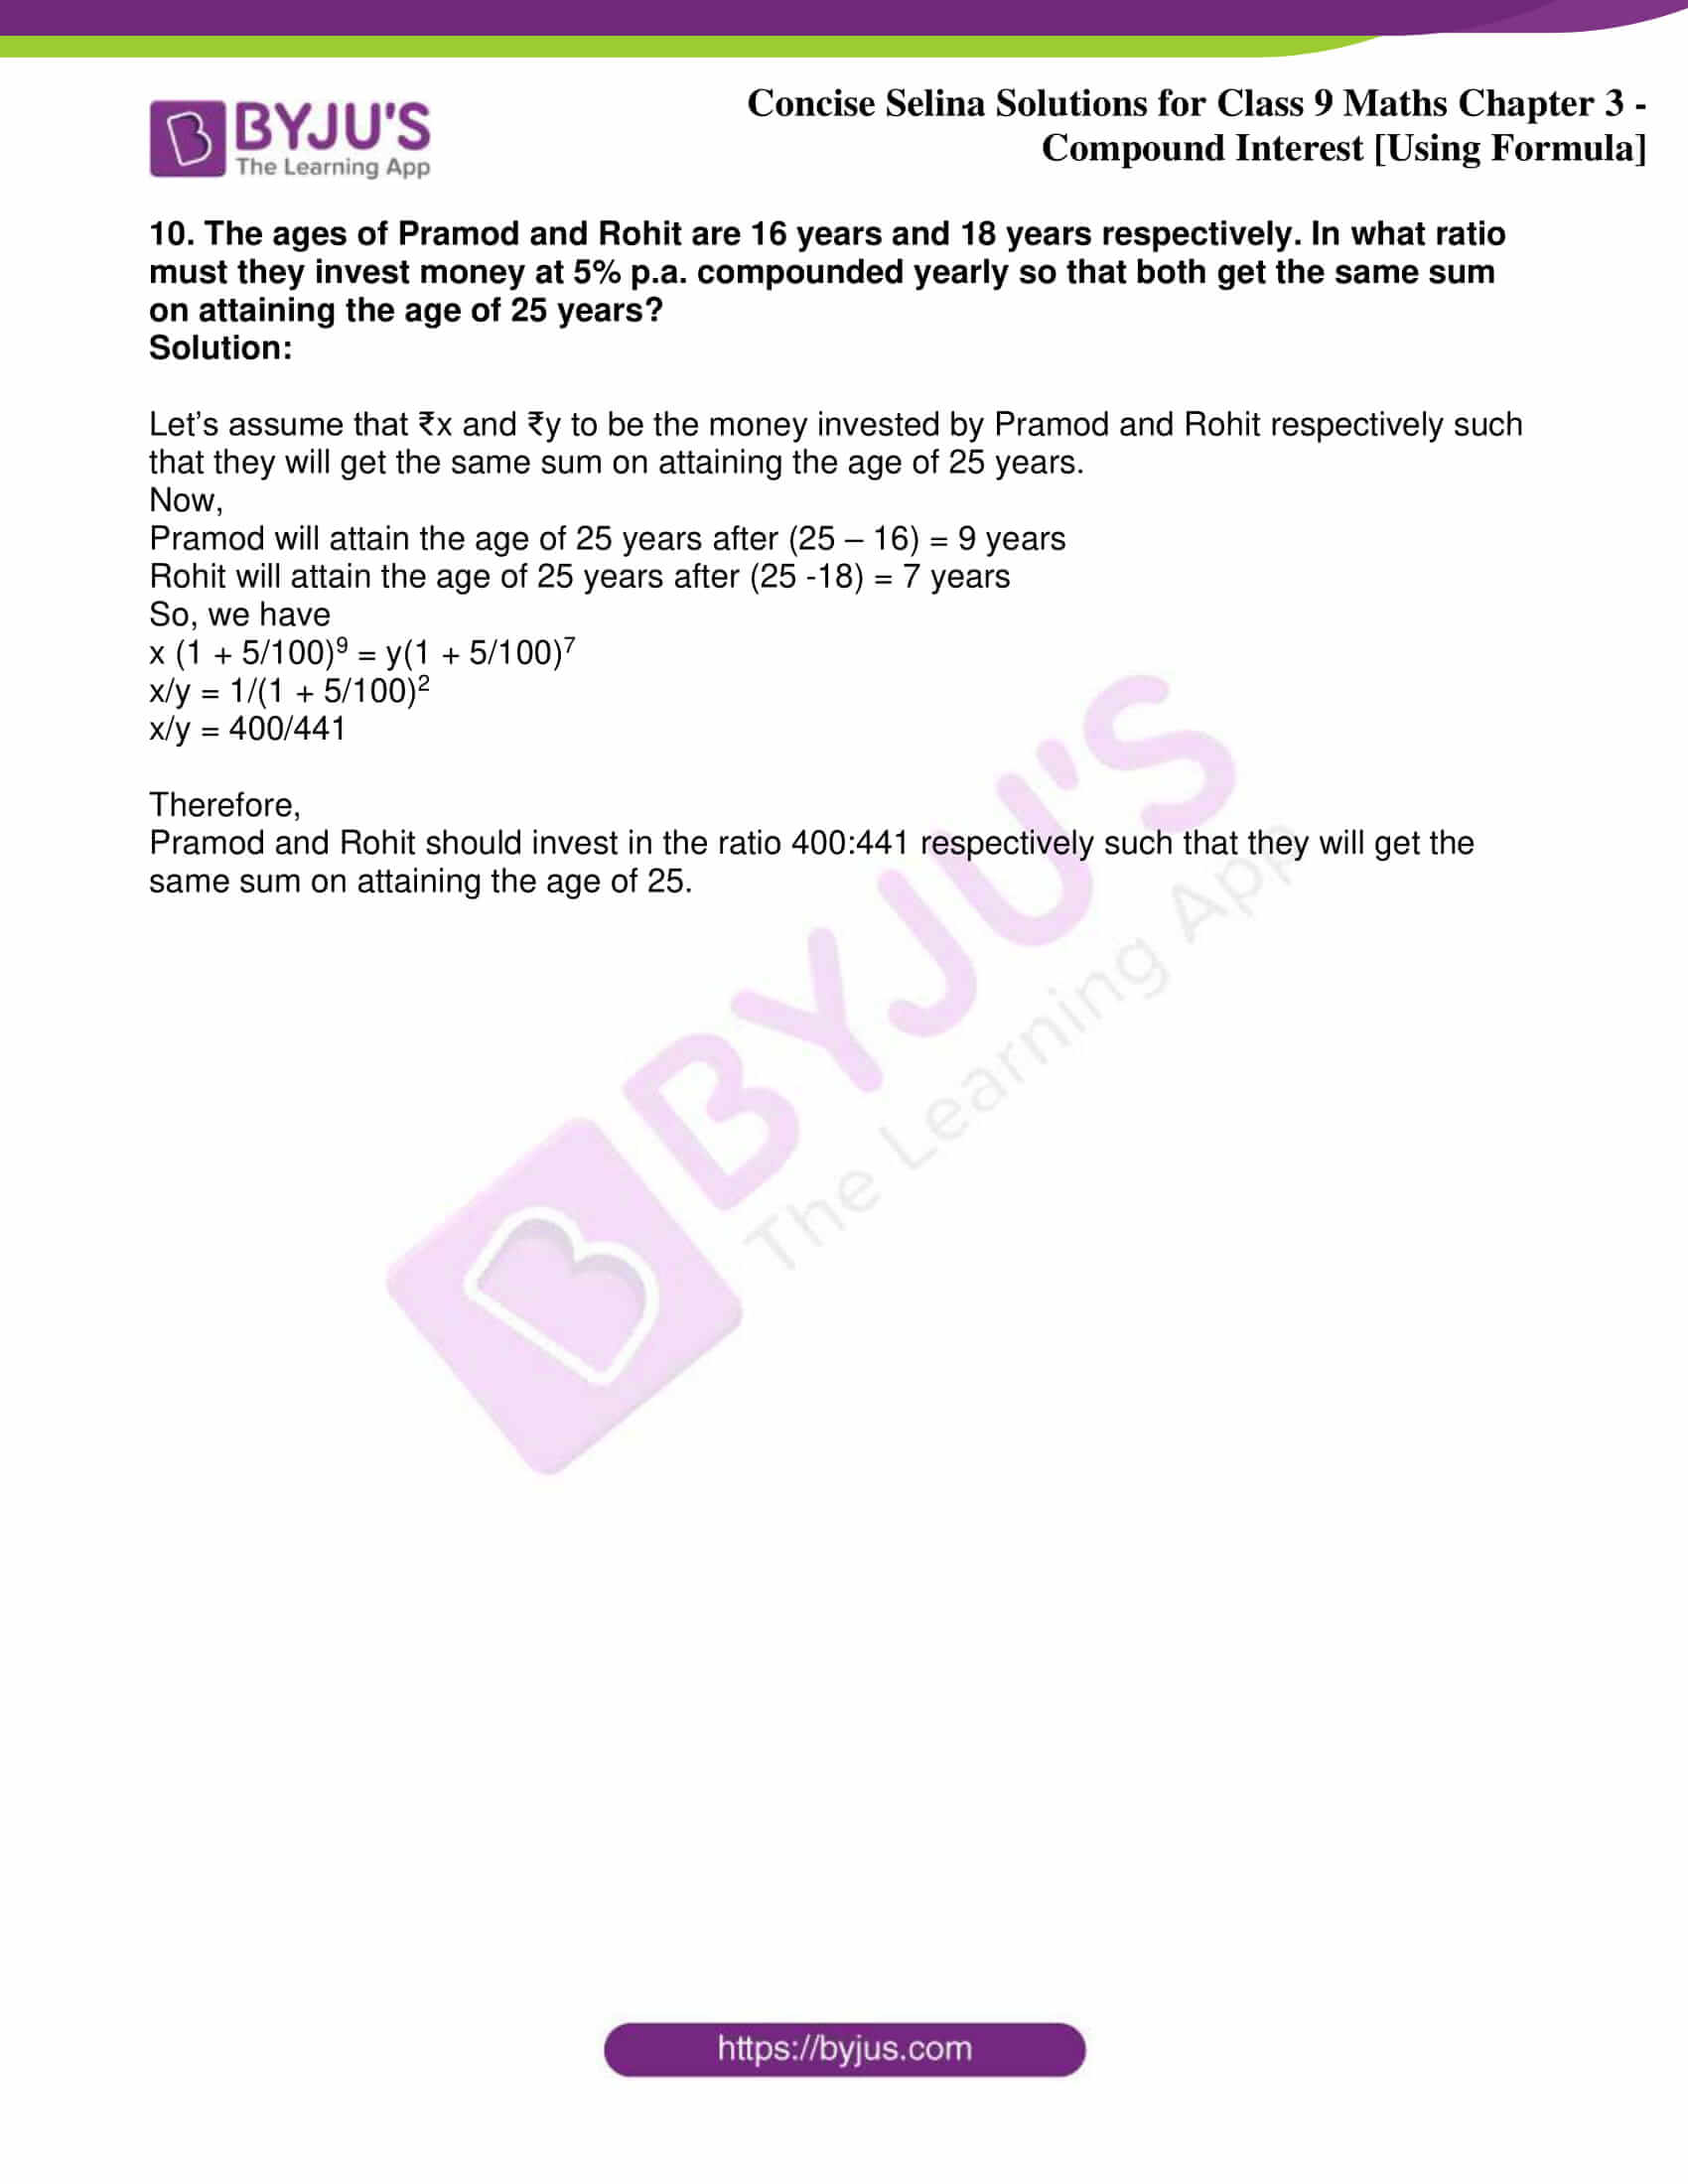 icse class 9 maths may10 selina solutions chapter 3 compound interest using formula 25